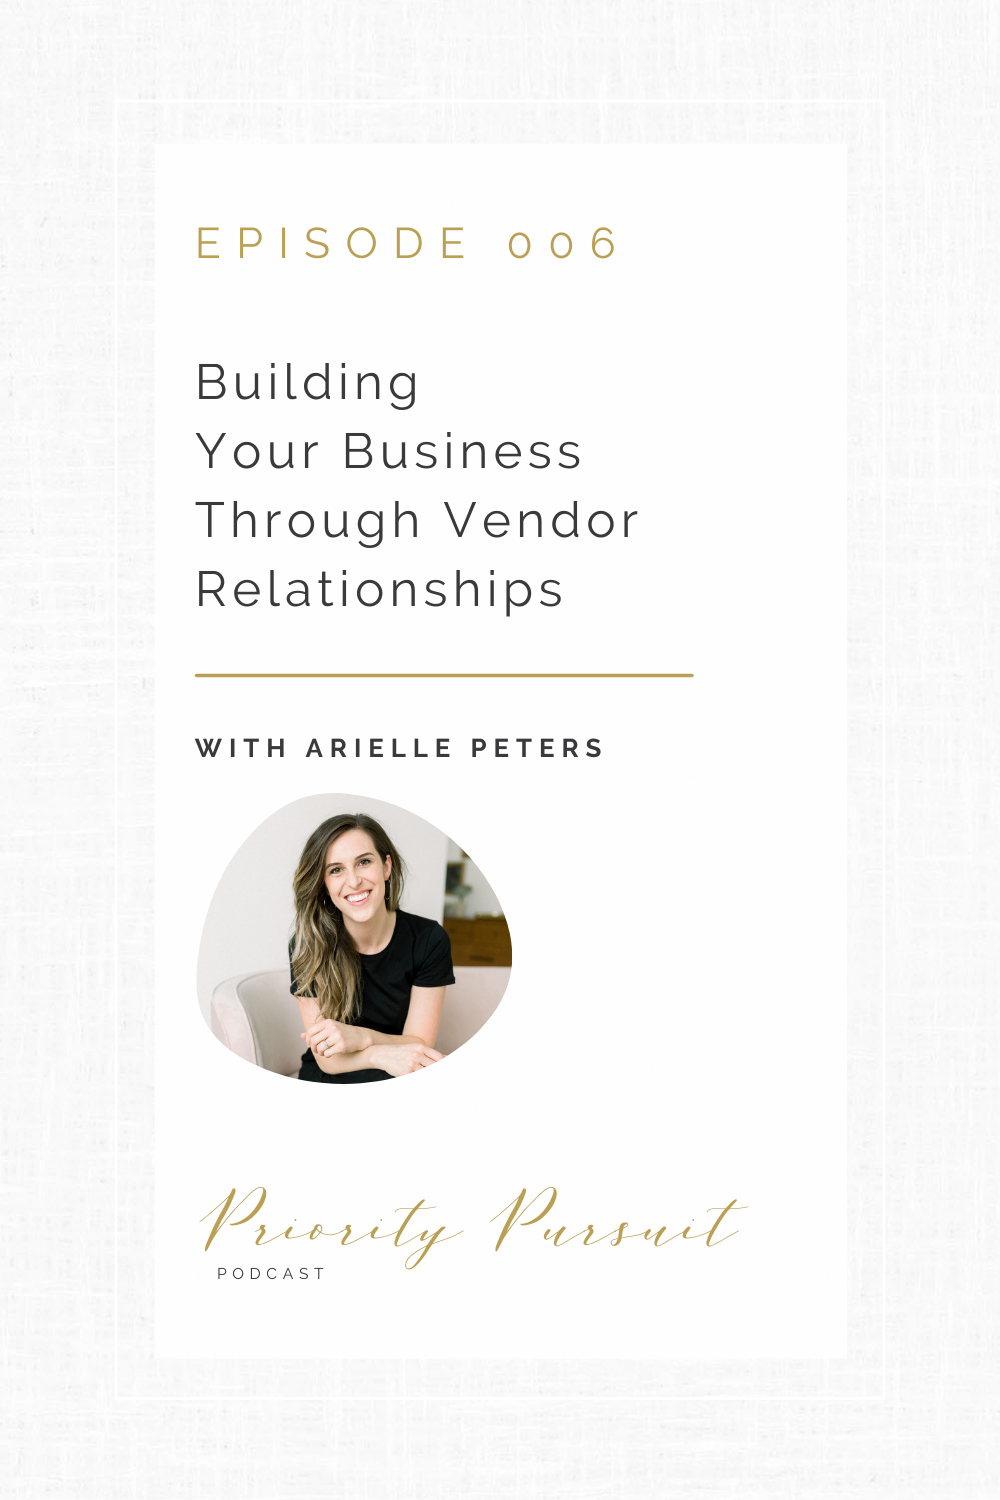 South Bend, Indiana Wedding Photographer Arielle Peters of Arielle Peters Photography explains how you can build your business through vendor relationships